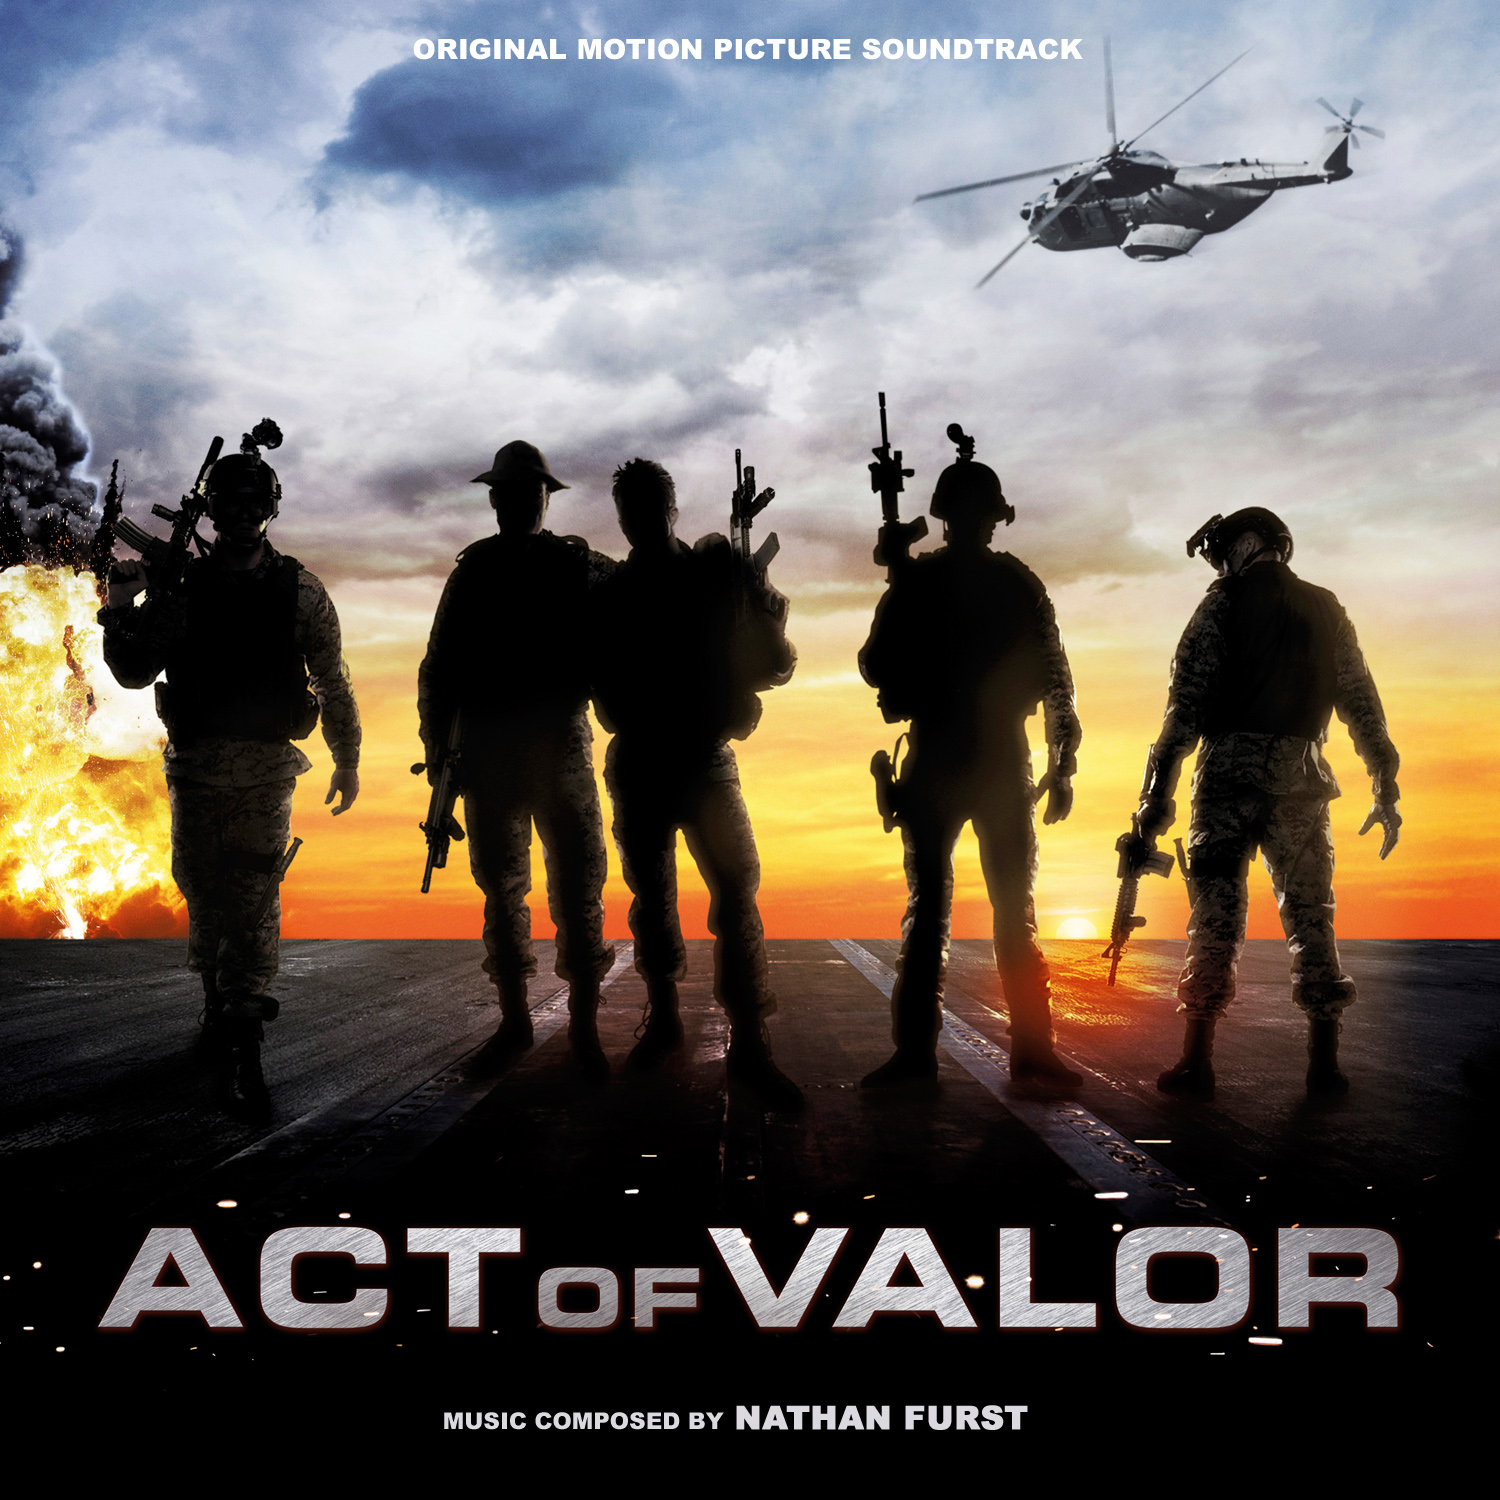 Act of Valor wallpaper 4